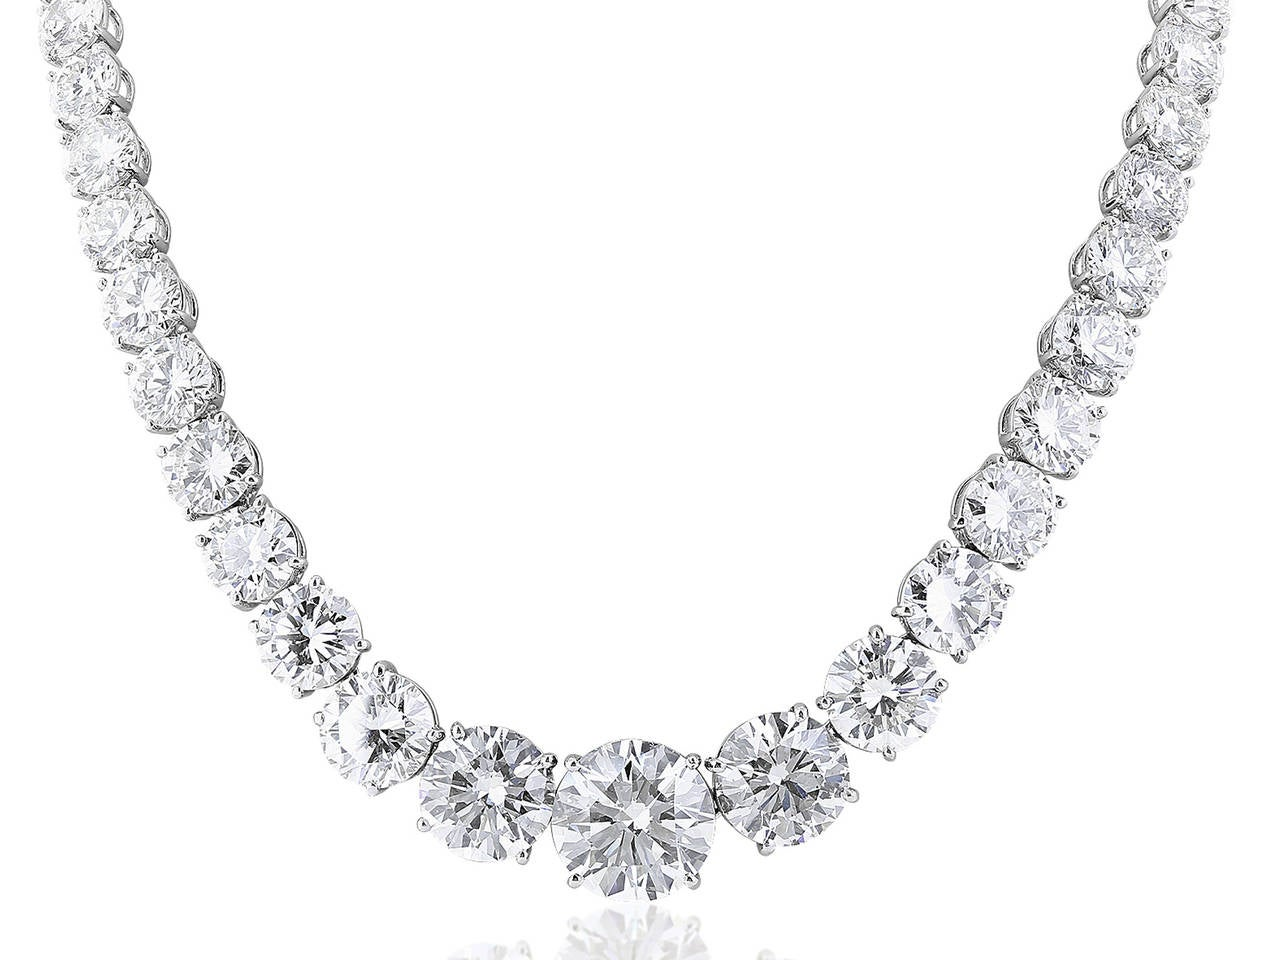 Stunning Platinum graduated Diamond Riviera style necklace.  The neclklace features 59 round brilliant cut diamonds having a total weight of 77.05 carats. three of the diamonds have GIA certificates.